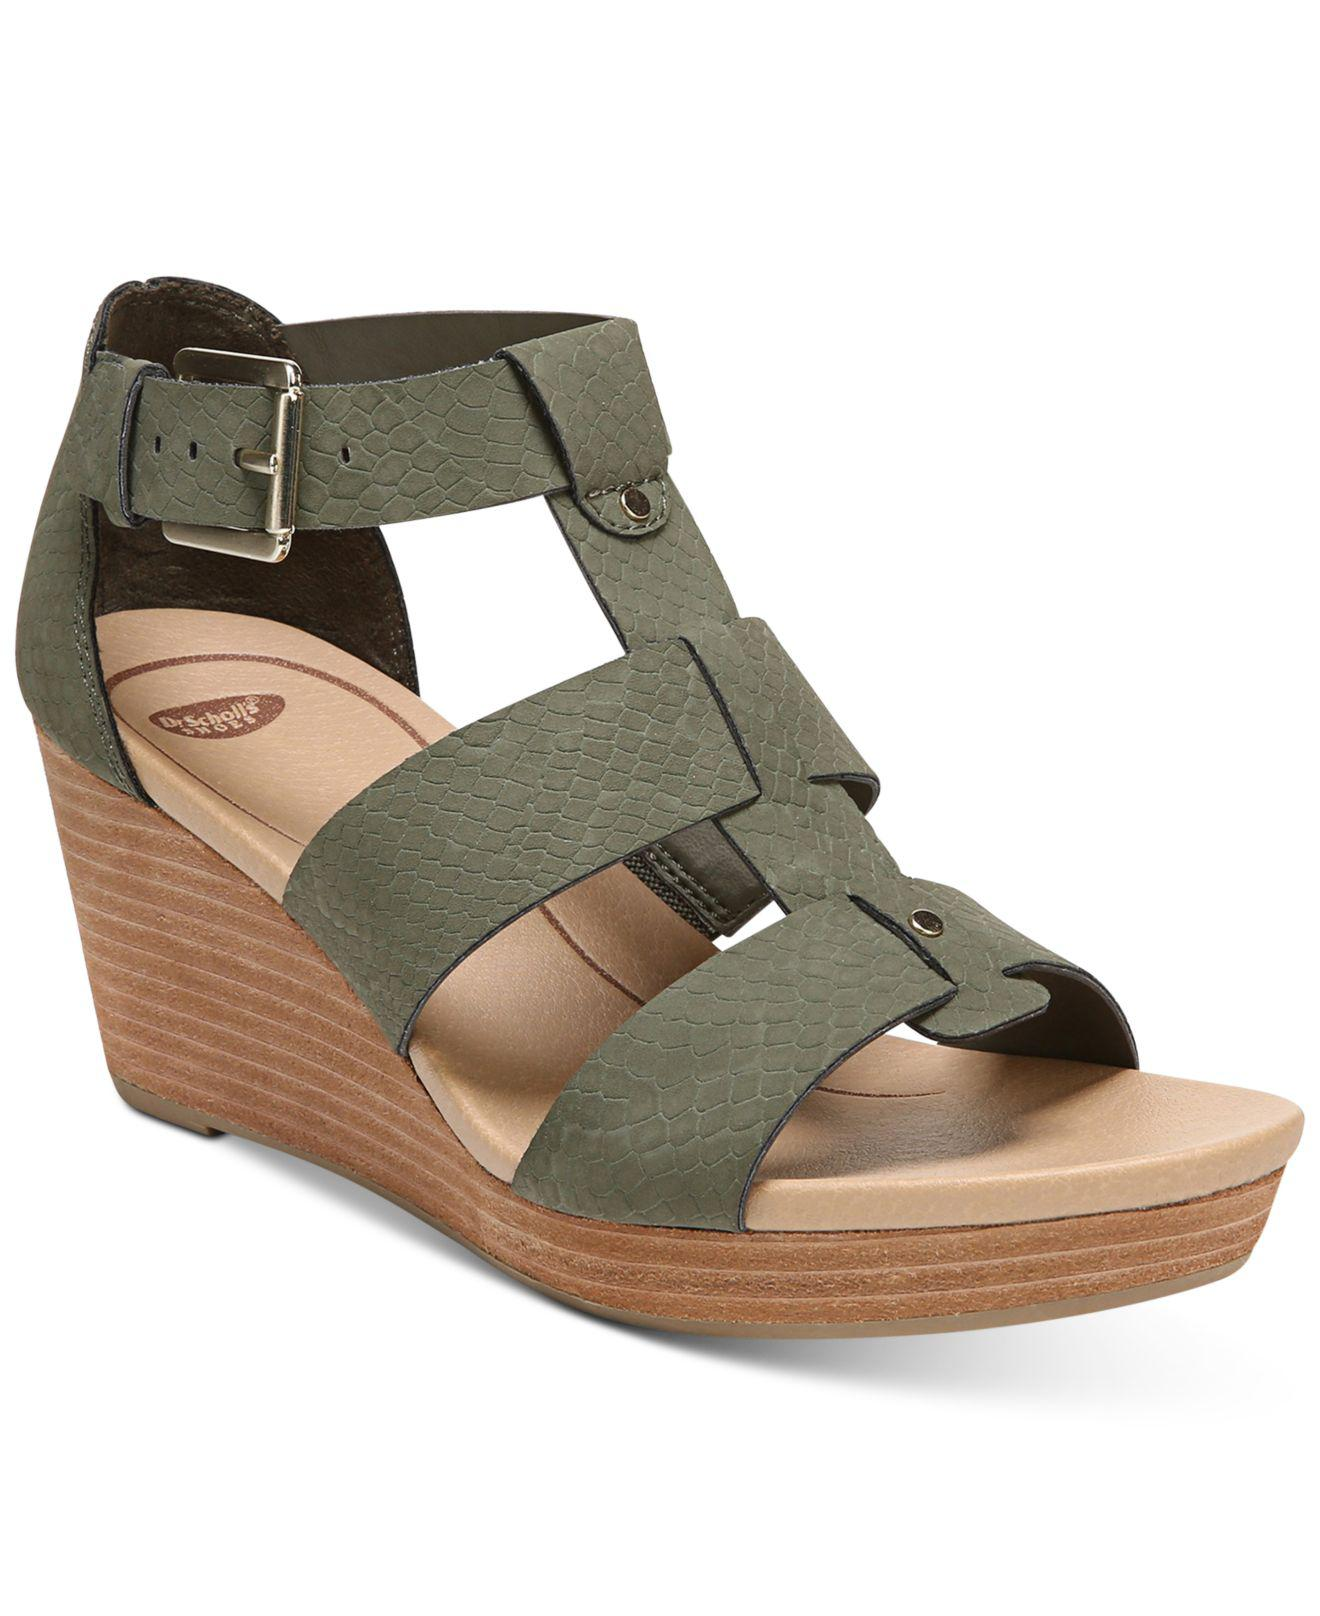 5dfe2844cc1 Lyst - Dr. Scholls Barton Wedge Sandals in Green - Save 51%